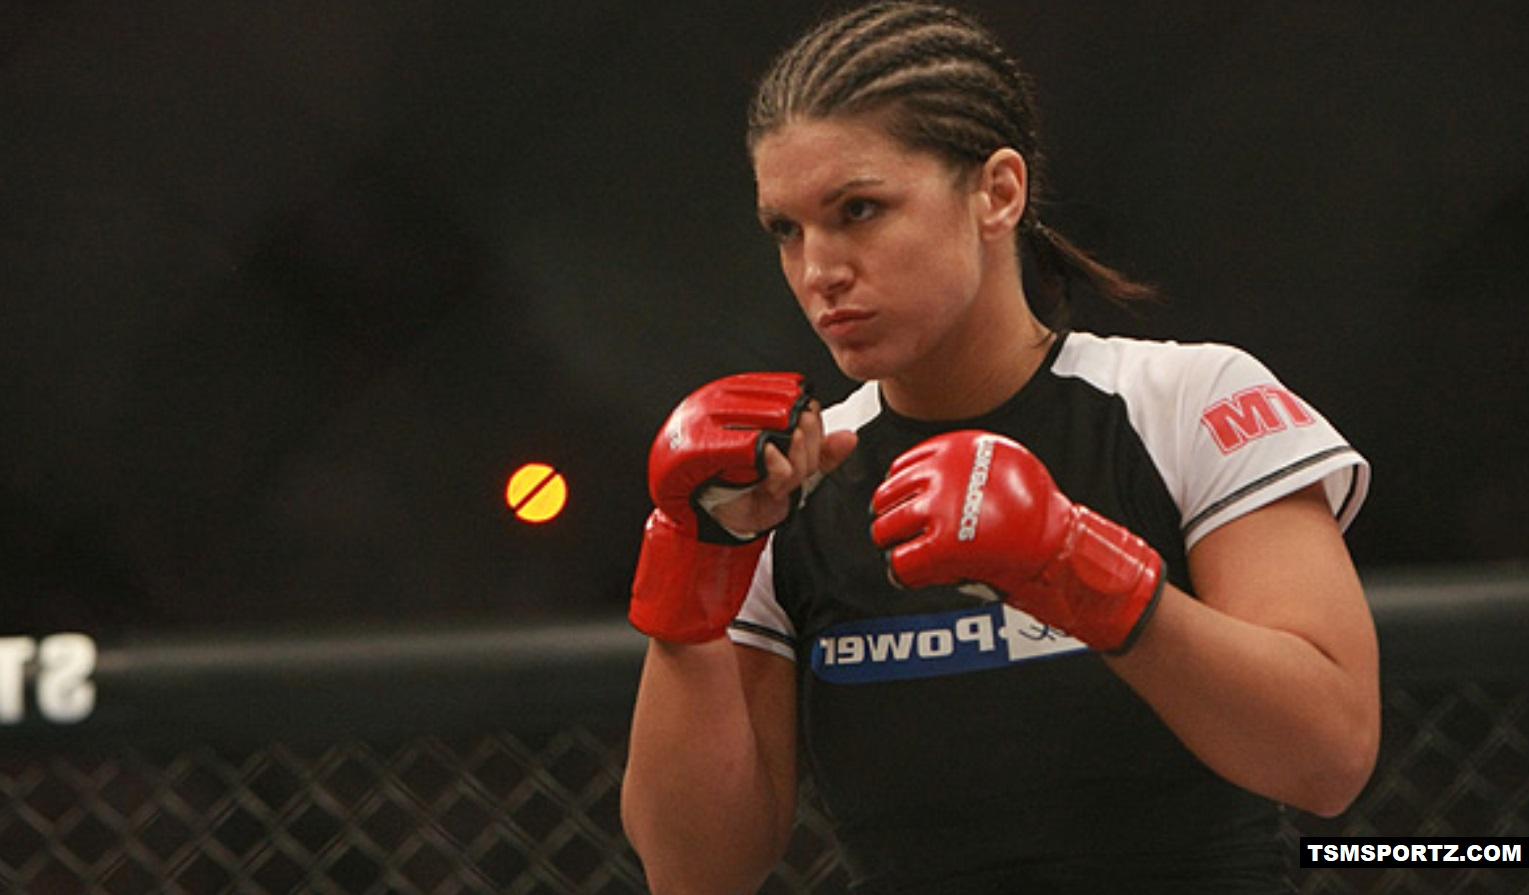 Gina Carano sets great records in MMA